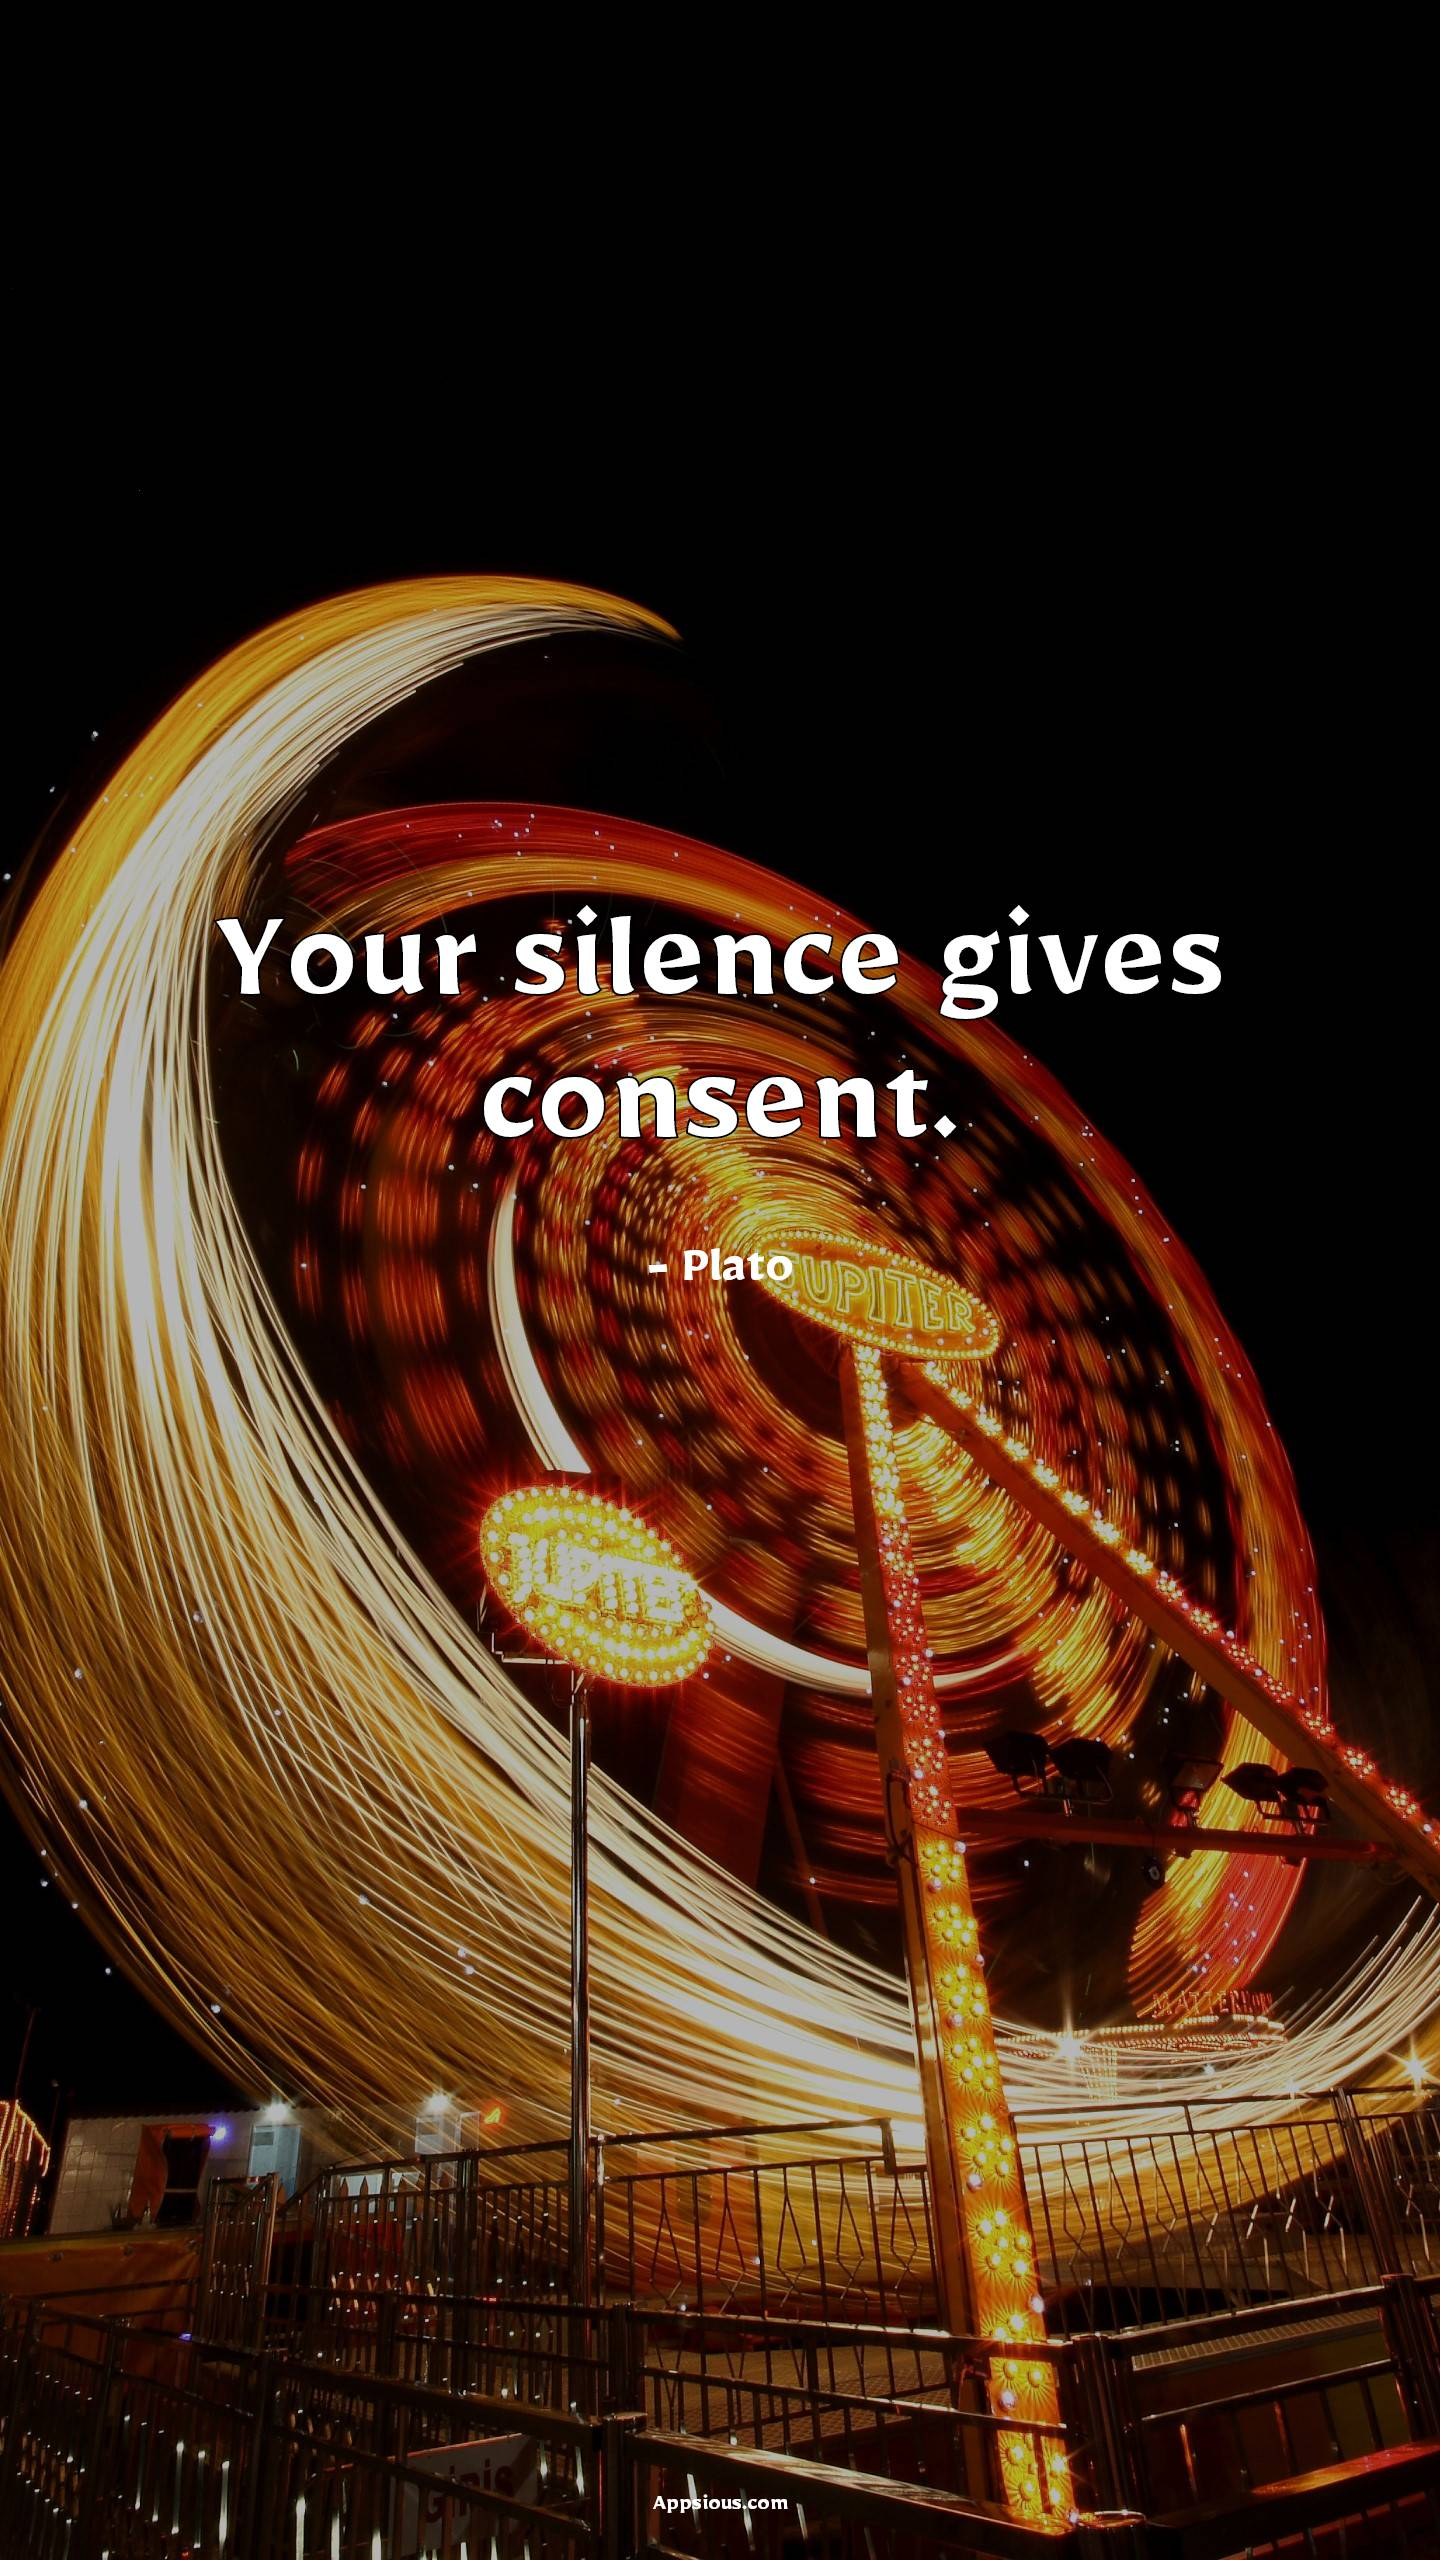 Your silence gives consent.